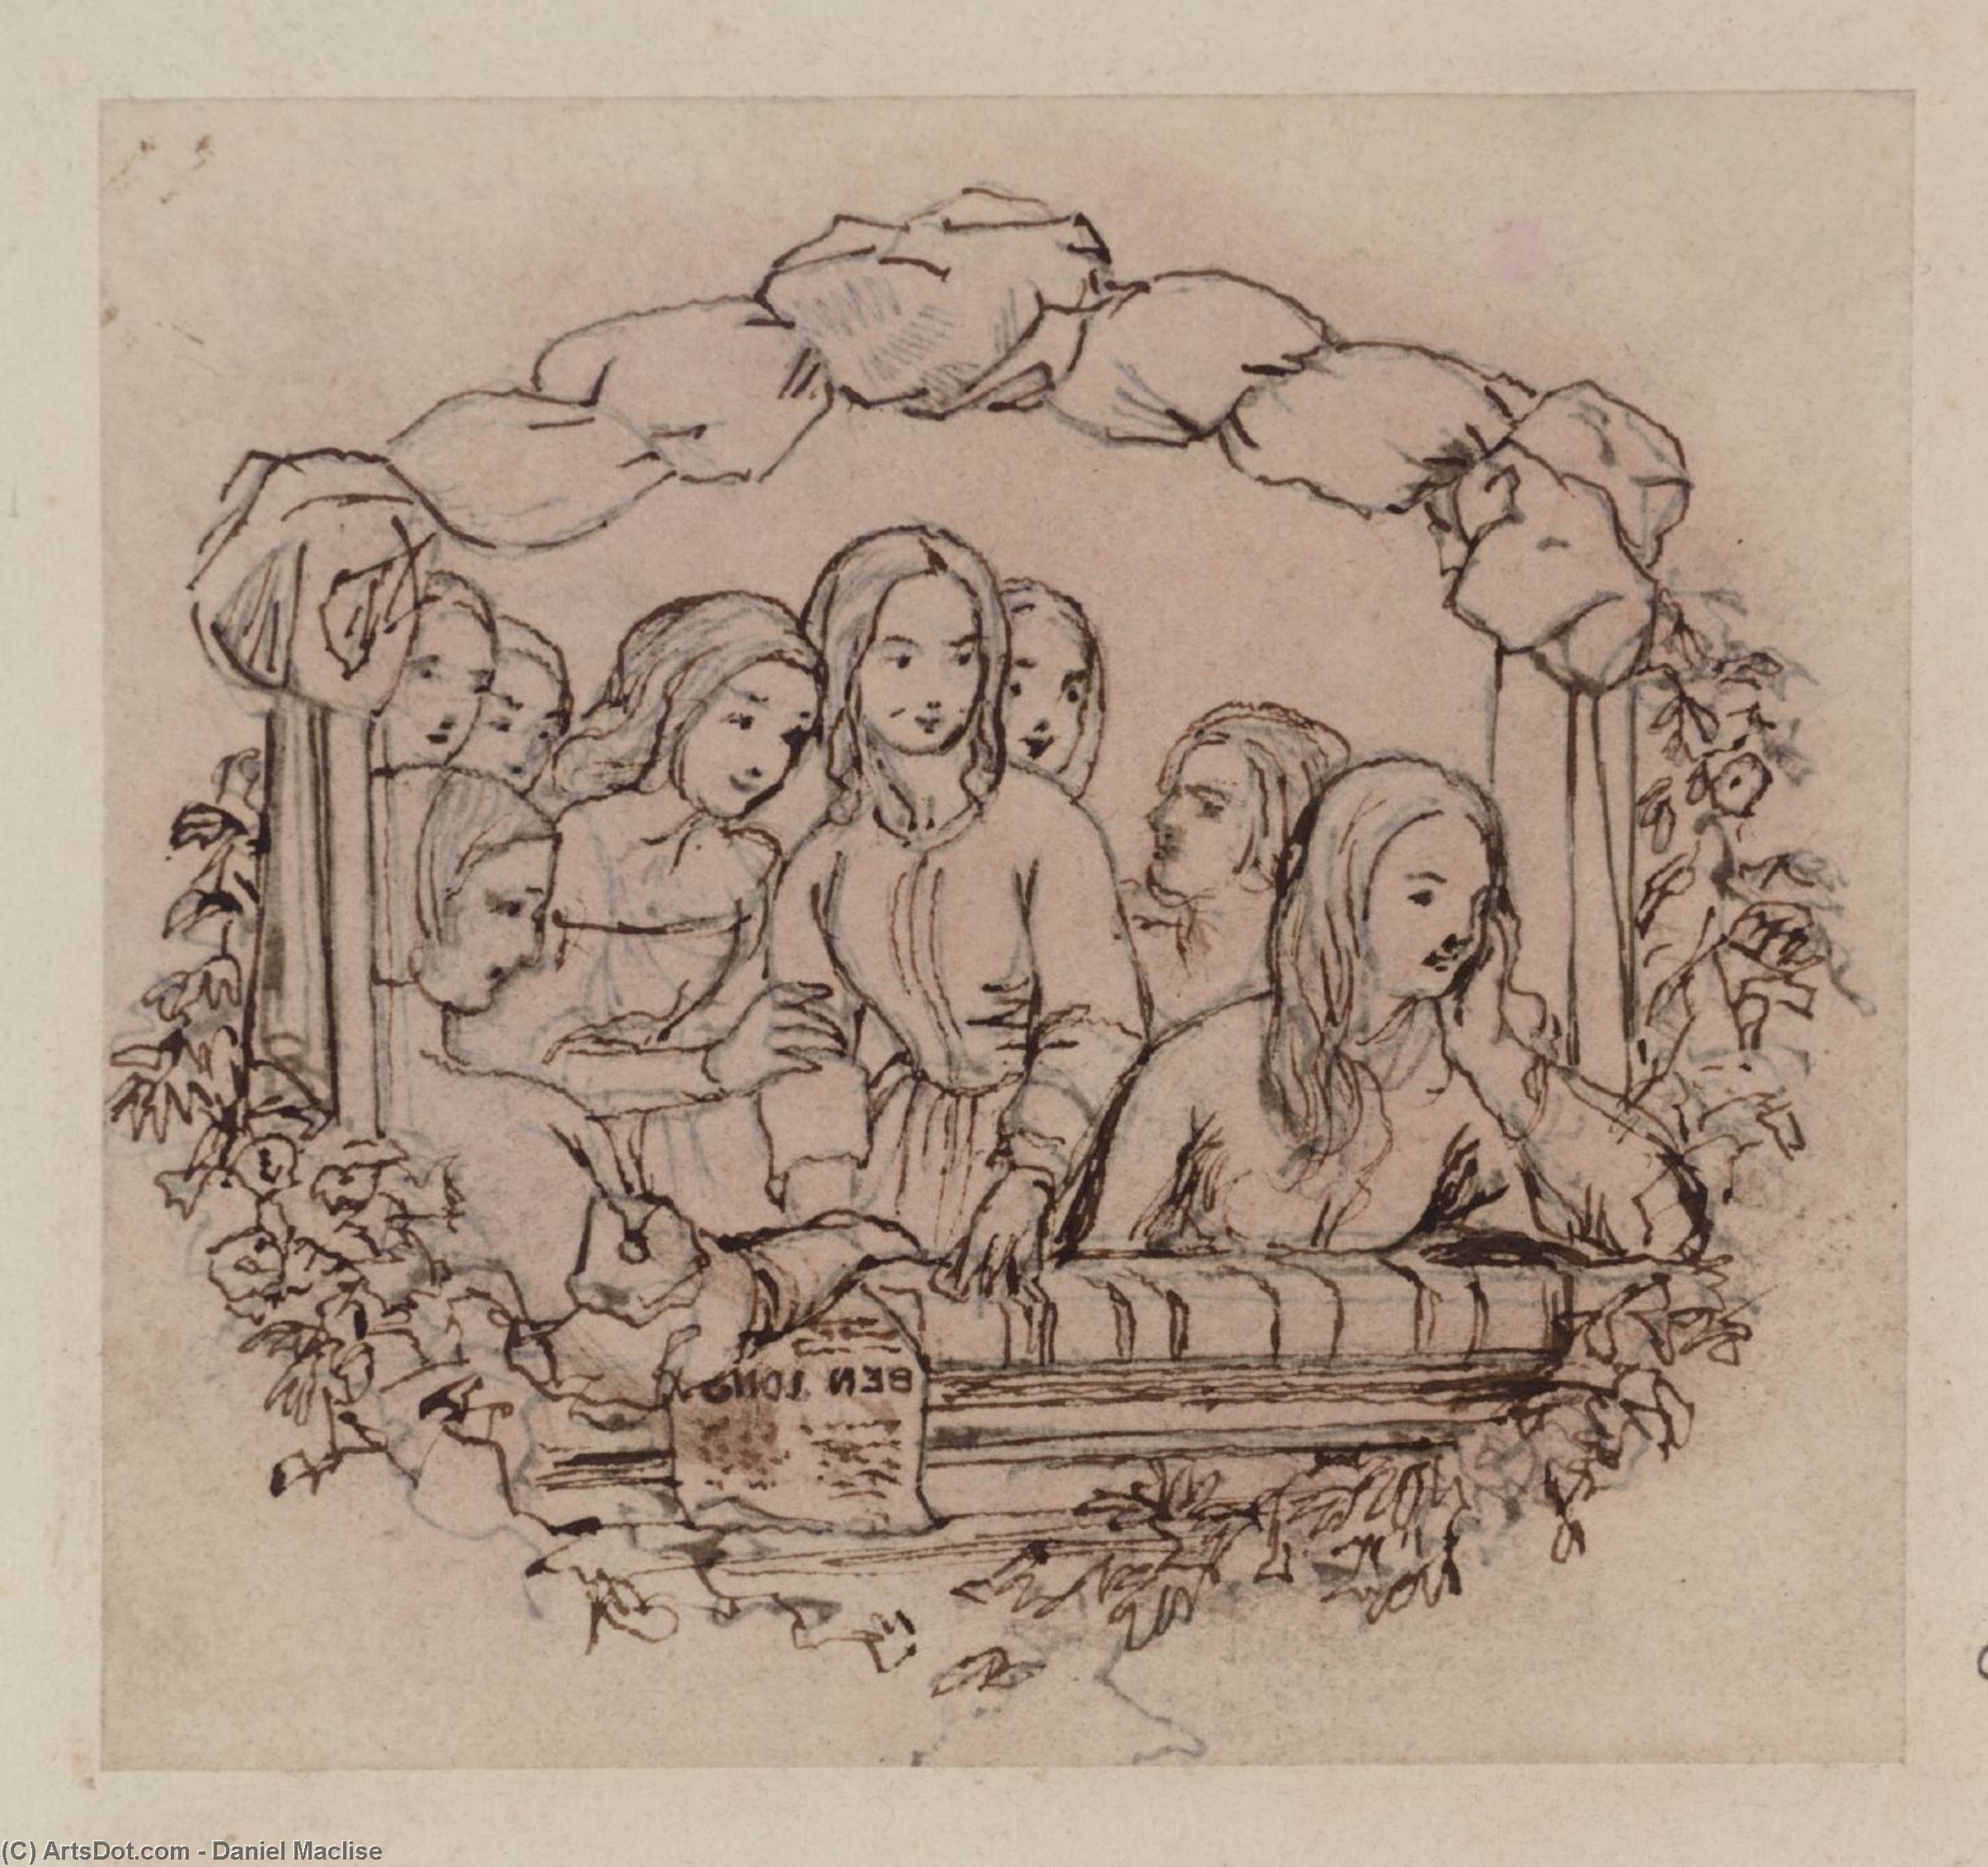 Buy Museum Art Reproductions : The Opera Box, Design for a Wood Engraving. Tracing, from the Principal Figure in Reverse by Daniel Maclise (1806-1870, Ireland) | ArtsDot.com